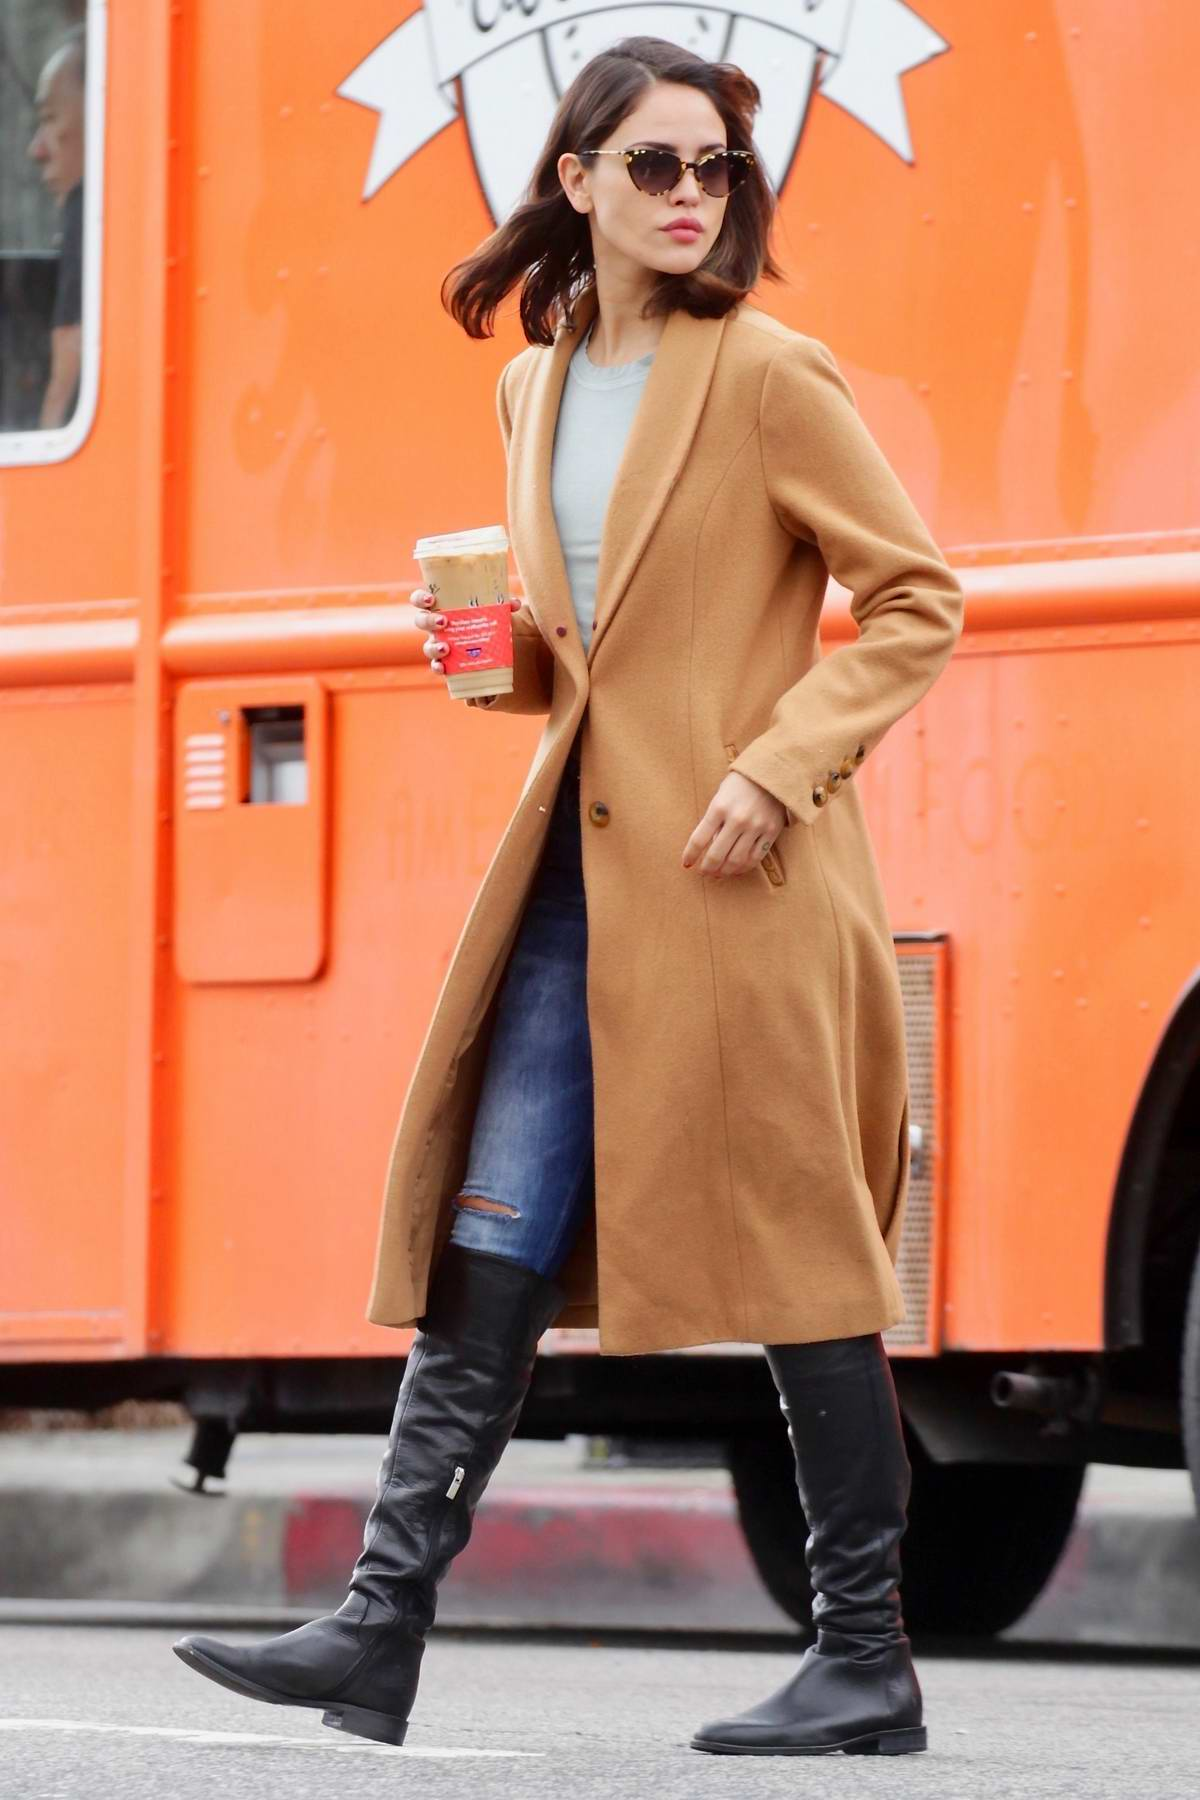 Eiza Gonzalez seen wearing a tan coat while stopping for gas in Los Angeles